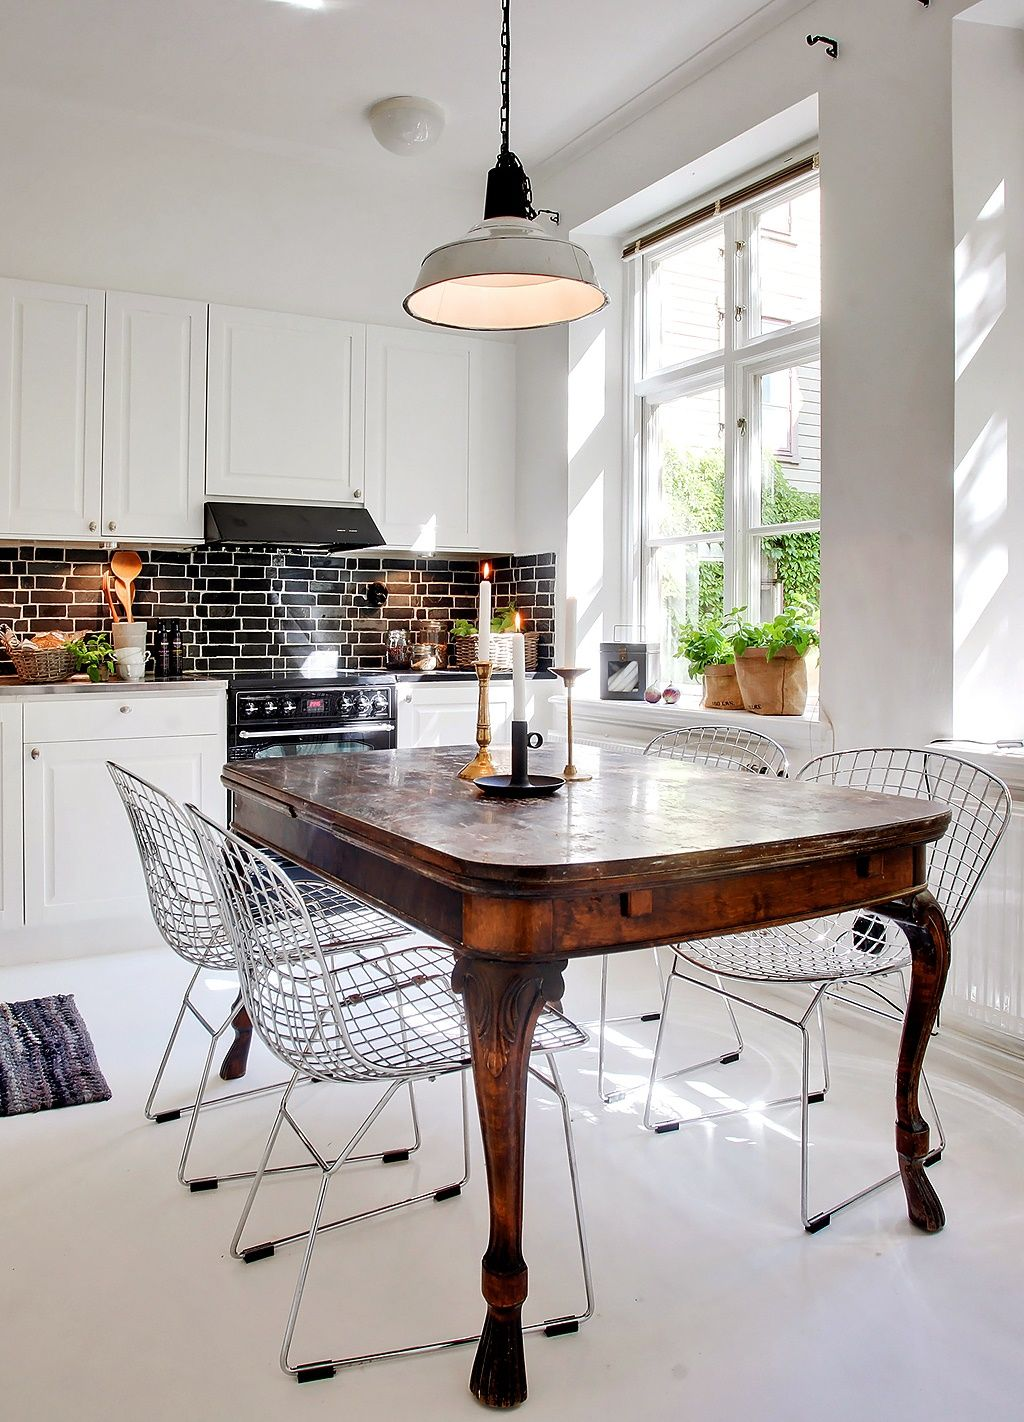 Mixing Styles Can Be Dynamic Modern Antique And Mid Century Dining Table With Bertoia Chairs